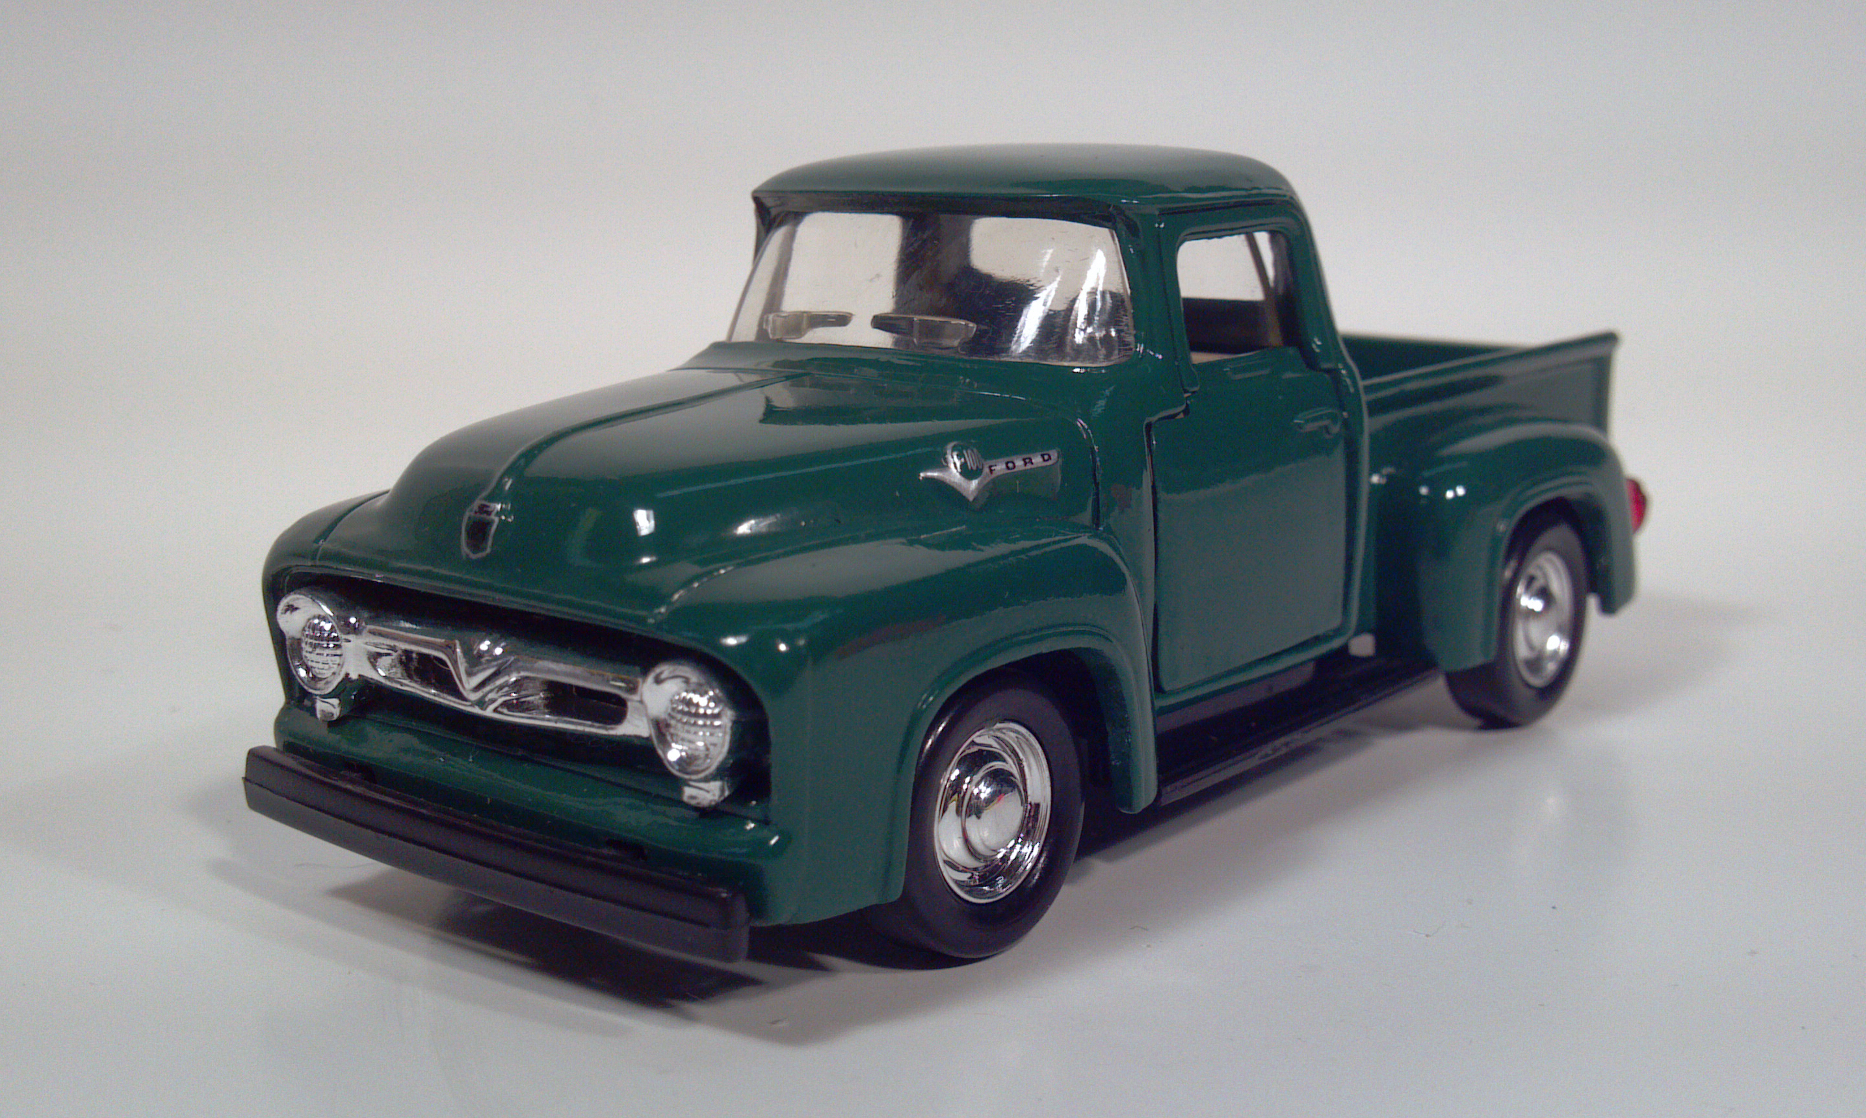 Road champs 1956 ford f100 pickup truck diecast 143 scale model toy